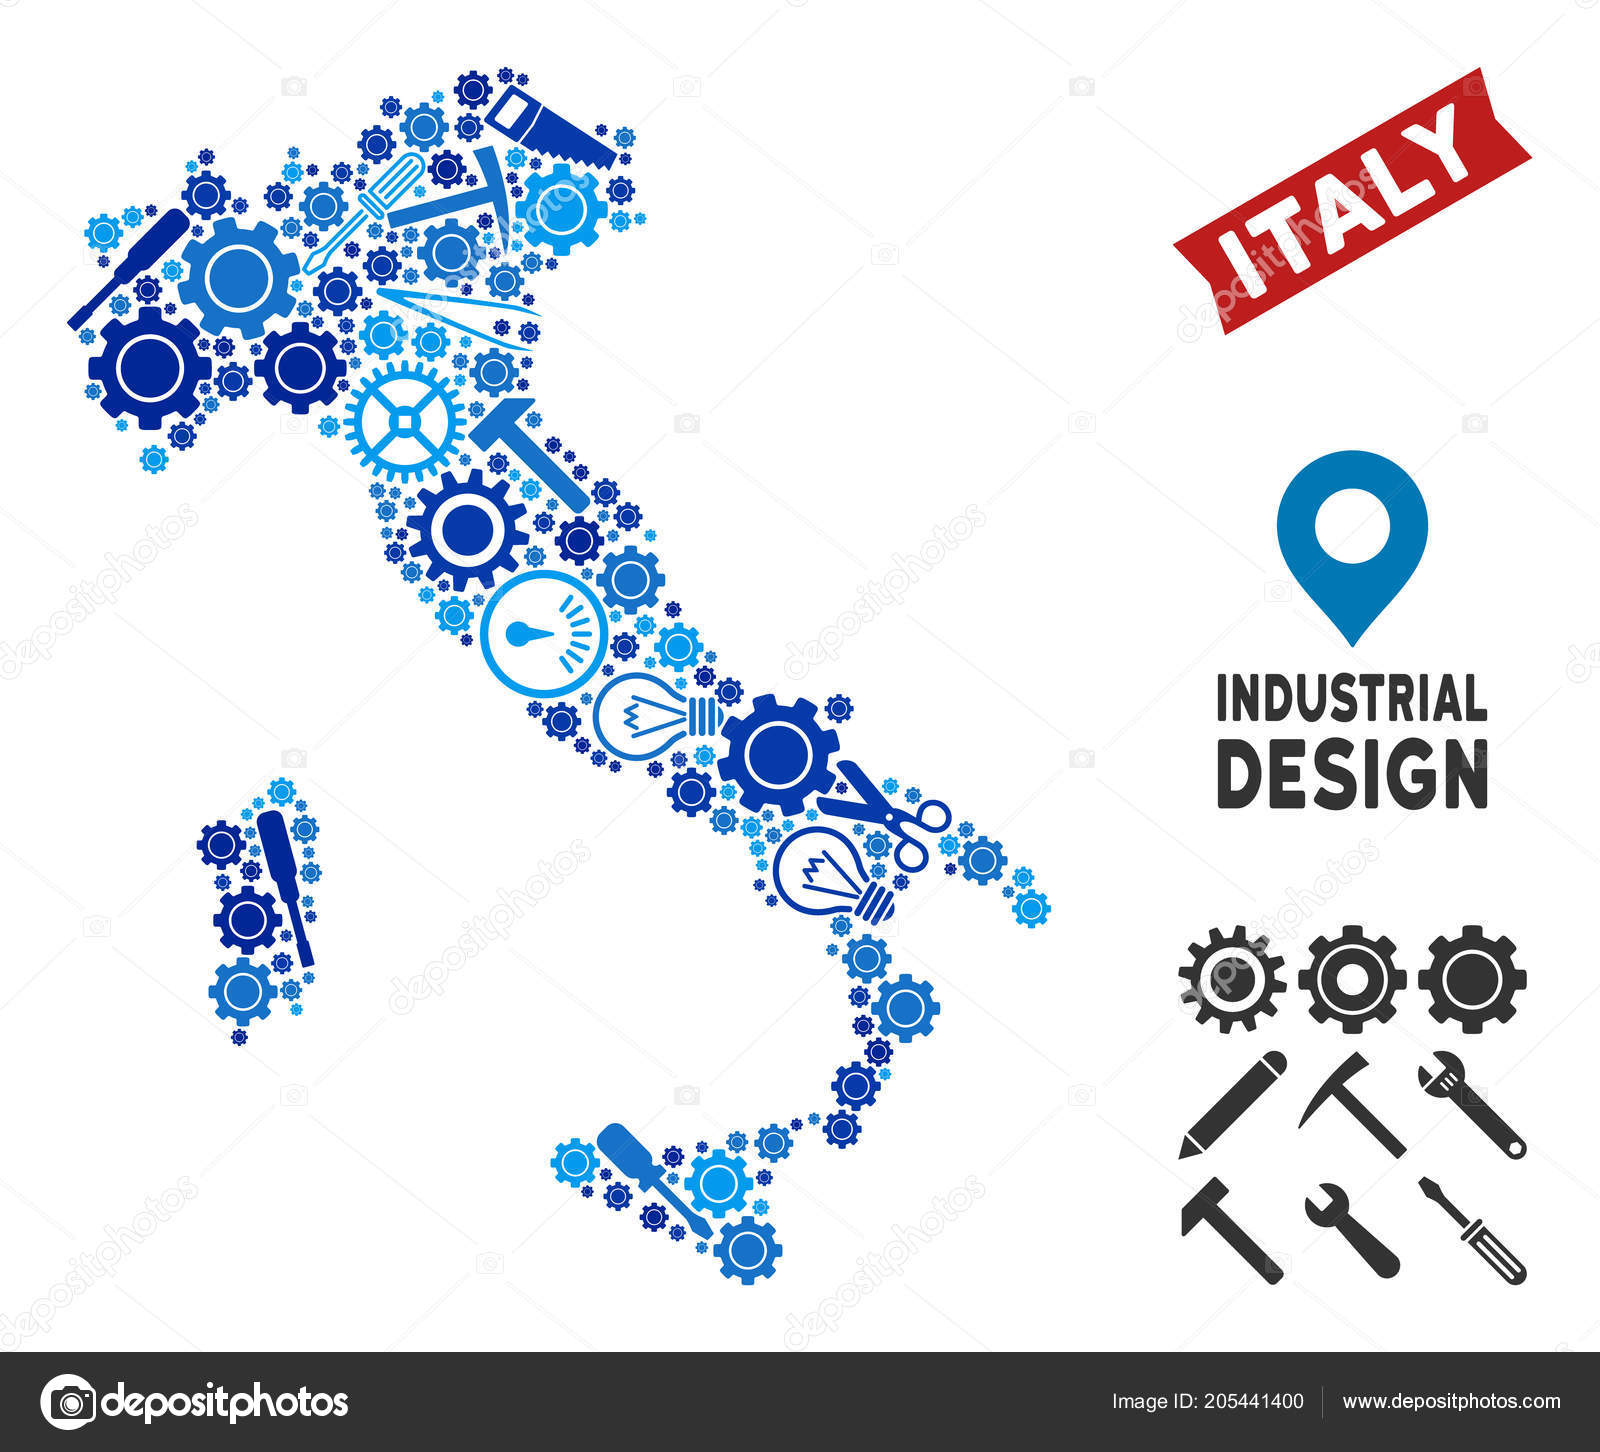 Industrial Map Of Italy on economic map of italy, landscape map of italy, label map of italy, seismic map of italy, geographical map of italy, decorative map of italy, geological map of italy, artistic map of italy, agricultural map of italy, agriculture map of italy, road map of italy, travel map of italy, aerial map of italy, culinary map of italy, natural resource map of italy, religious map of italy, country map of italy, transportation map of italy, regional map of italy, railroad map of italy,